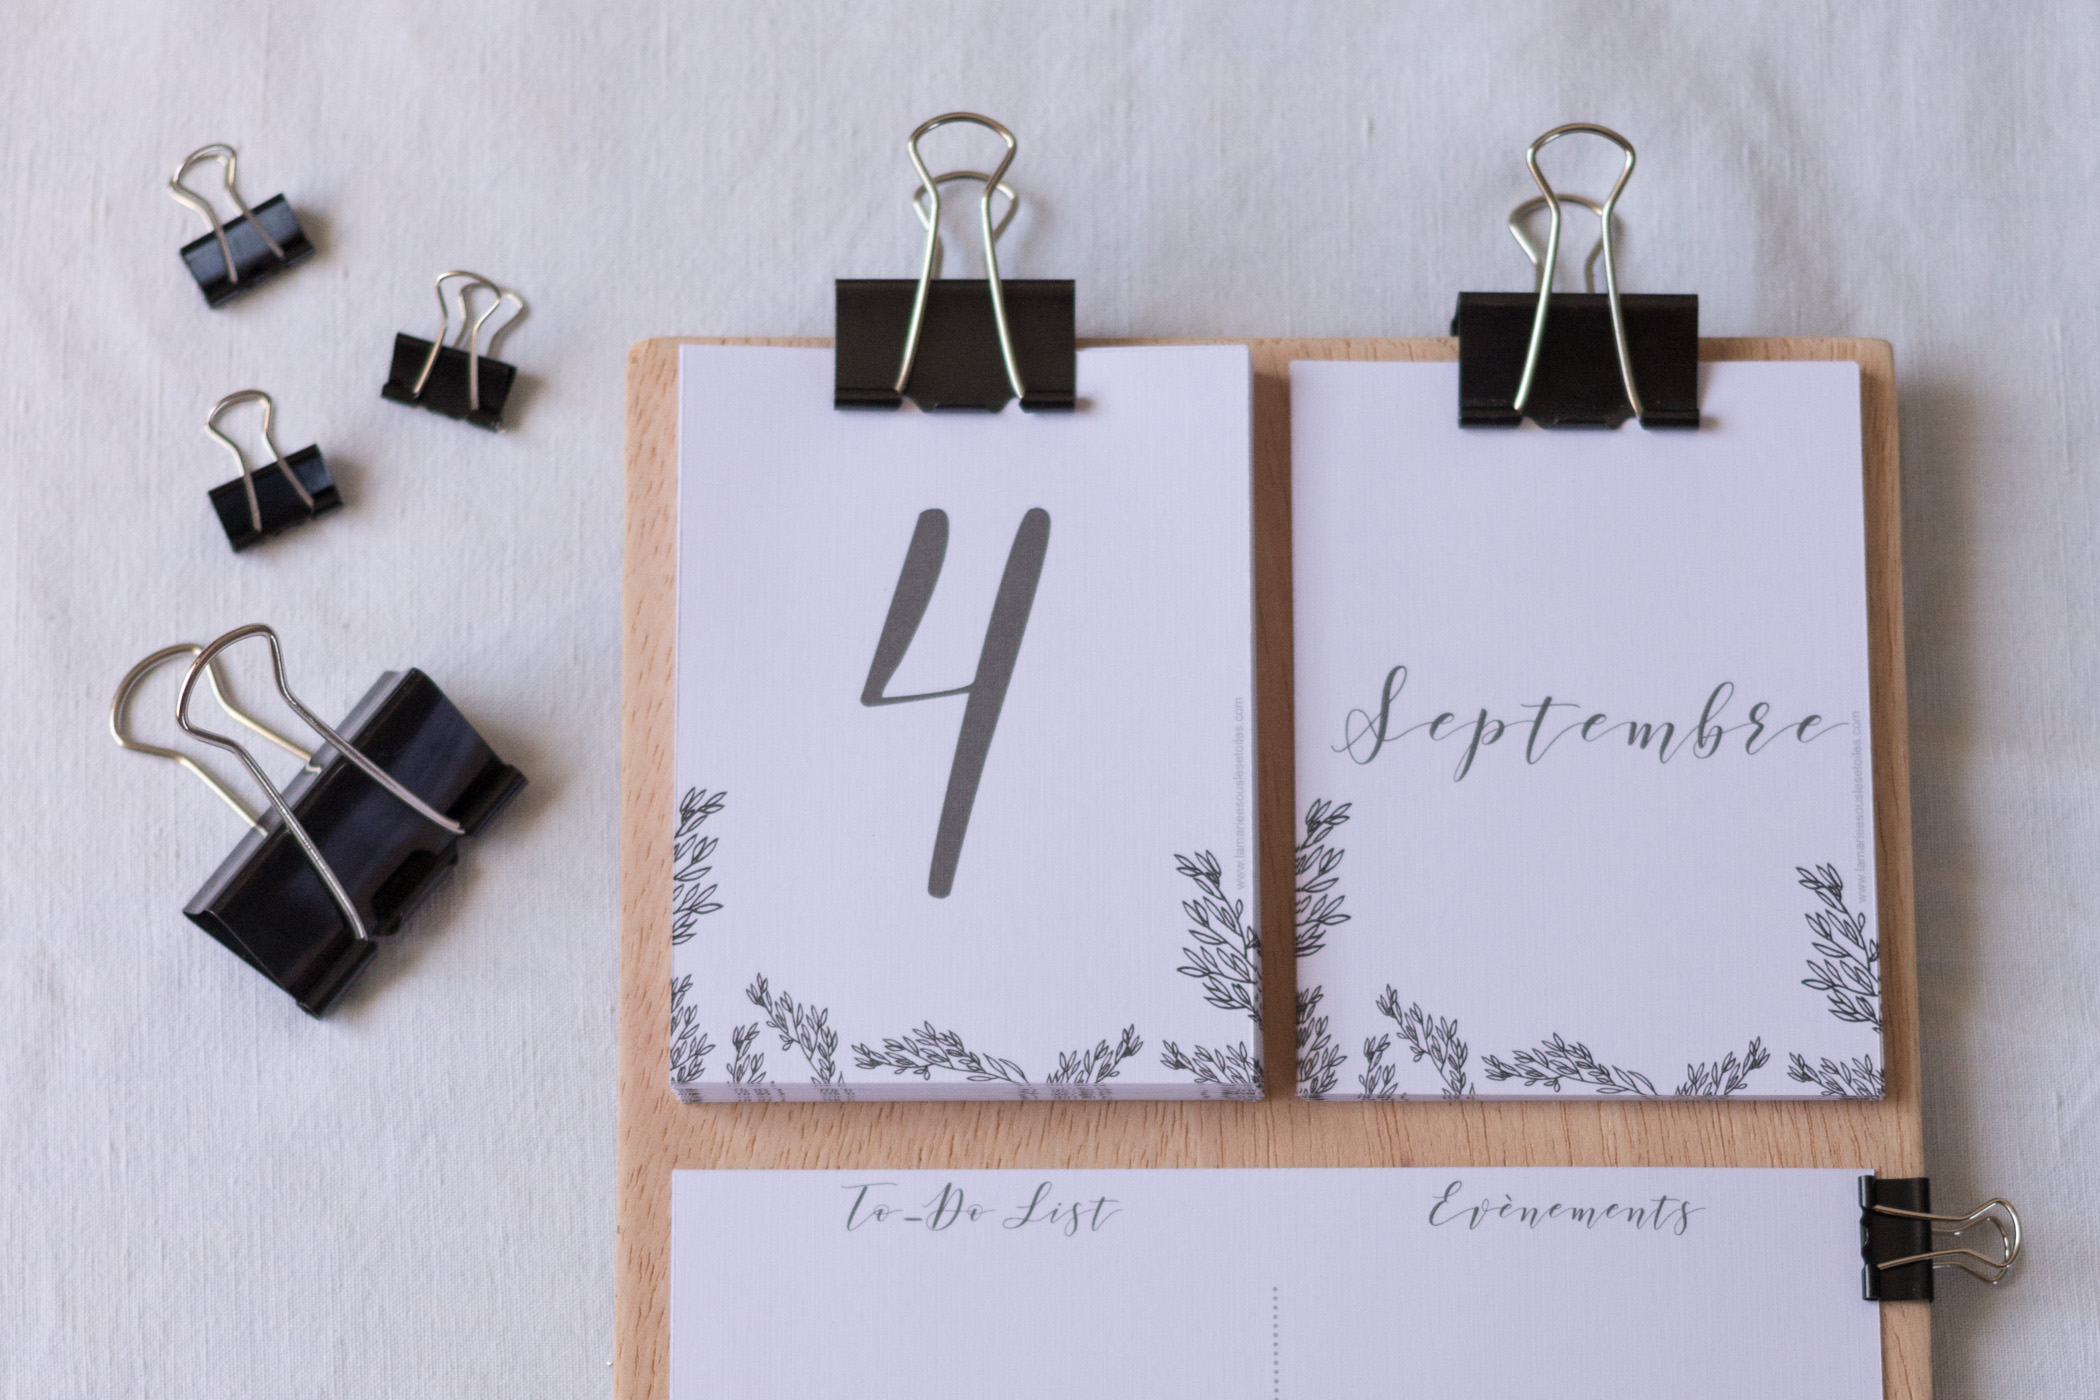 DiY Printable Calendrier DiY esprit kinfolk a imprimermade by La Mariee Sous Les Etoiles x Make My Wed-29